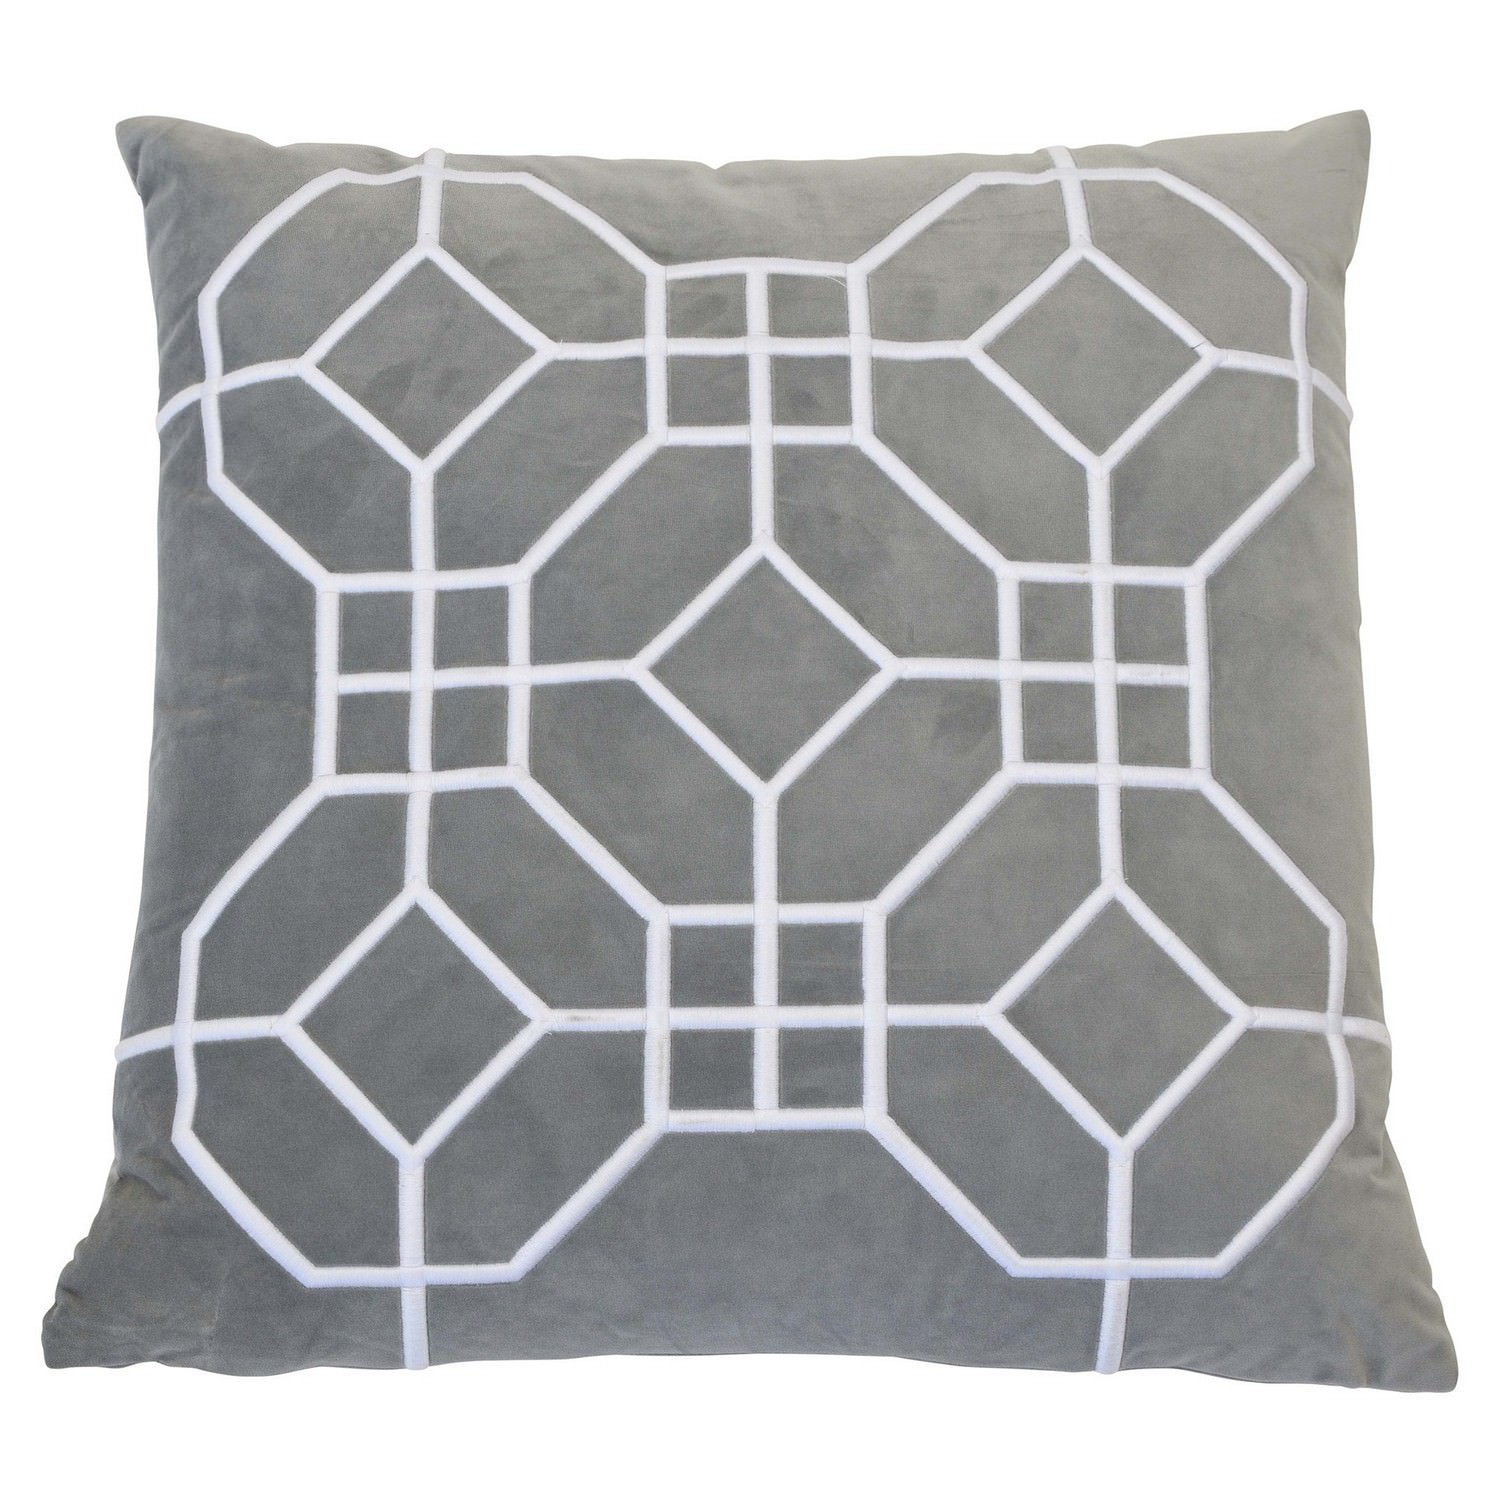 San Diego Velvet Scatter Cushion Cover, Grey